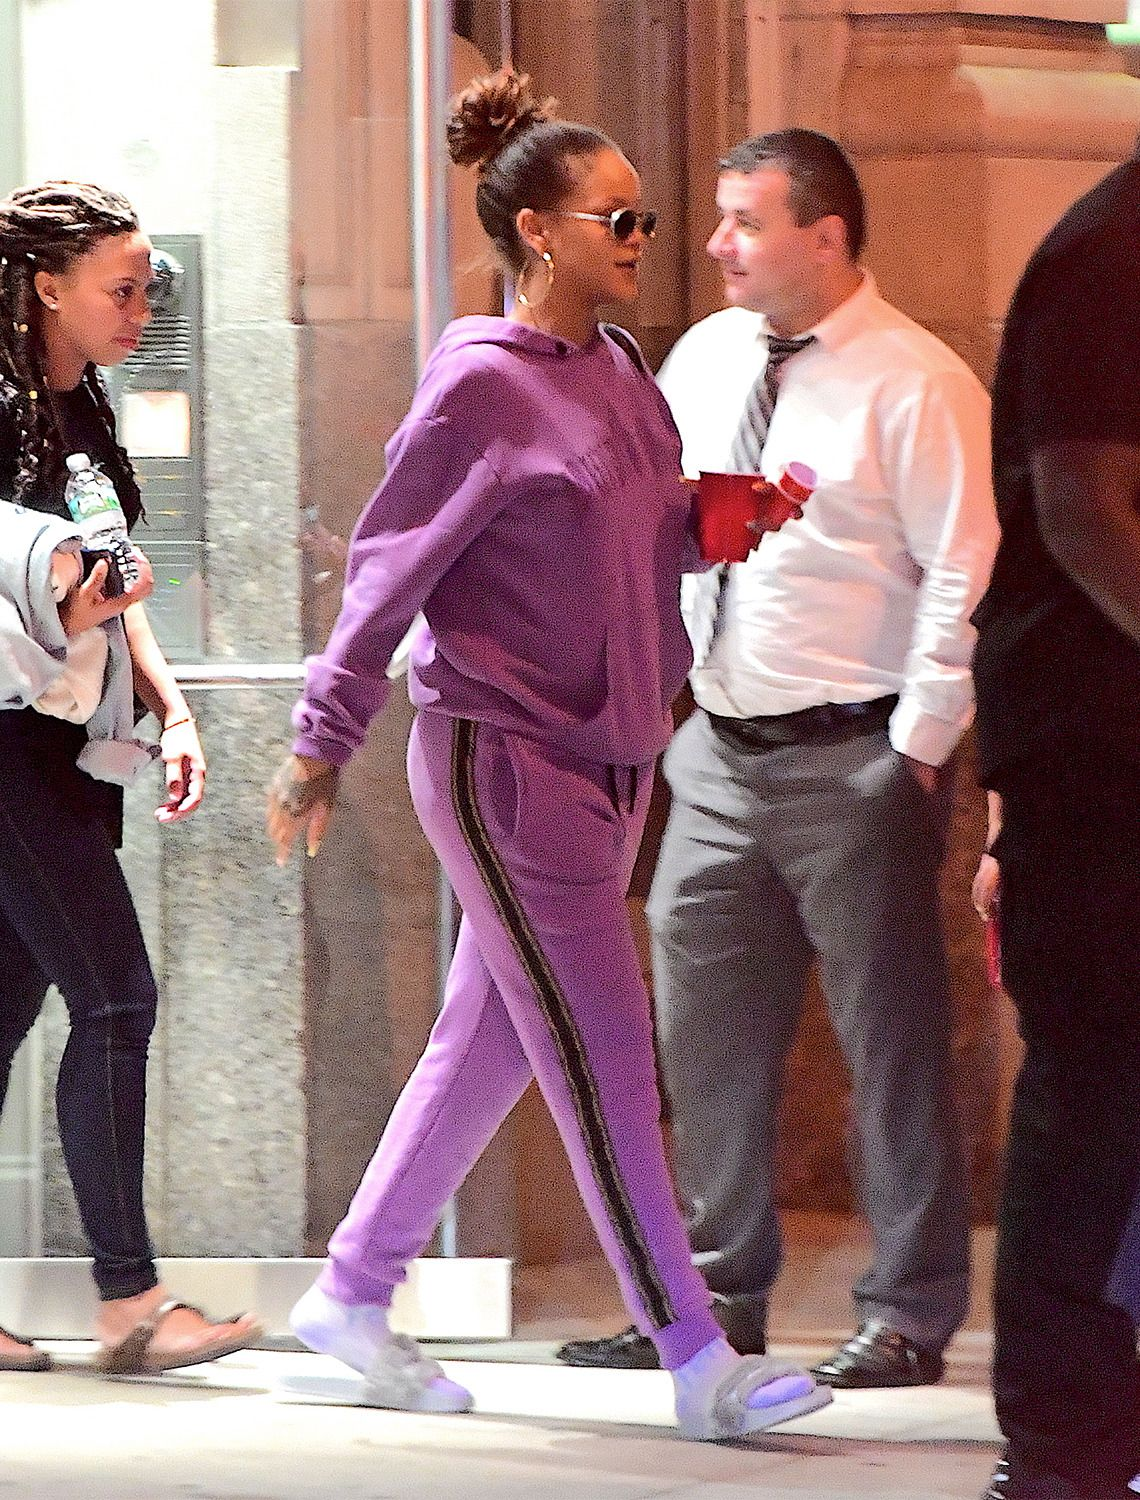 a2d72a8a5 9/12 Rihanna wore a purple sweatsuit by Palm Angels in New York ...